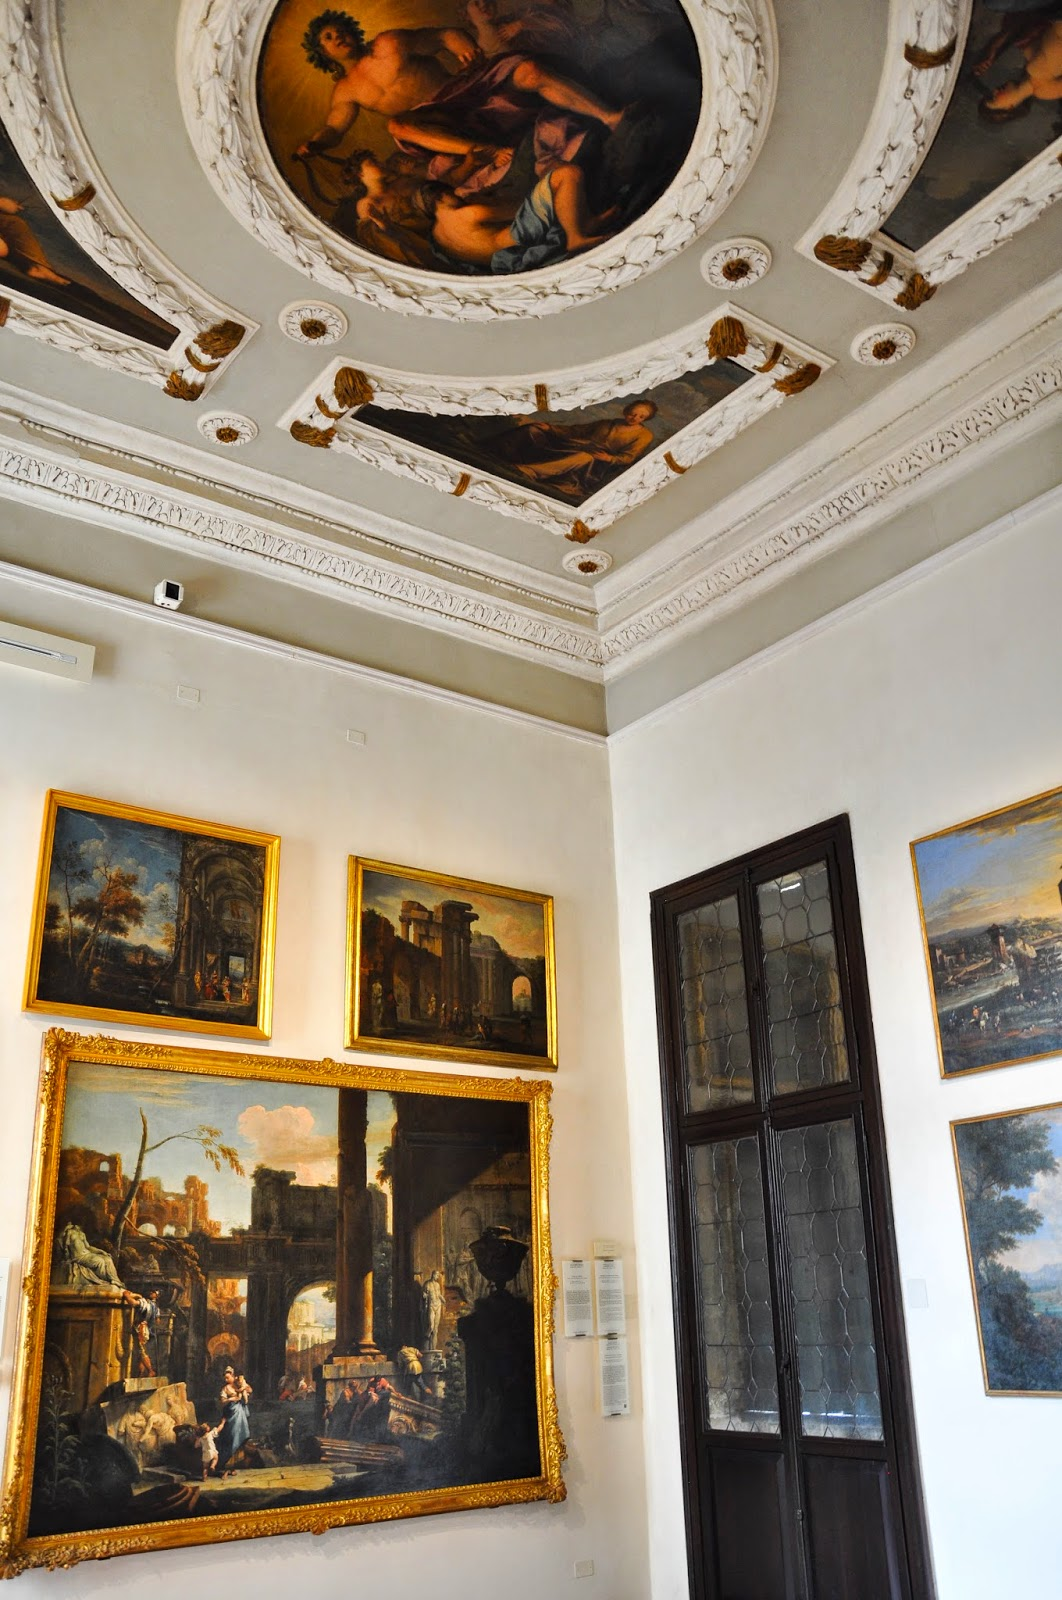 room filled with art Civic Art Gallery Palazzo Chiericati Vicenza Italy